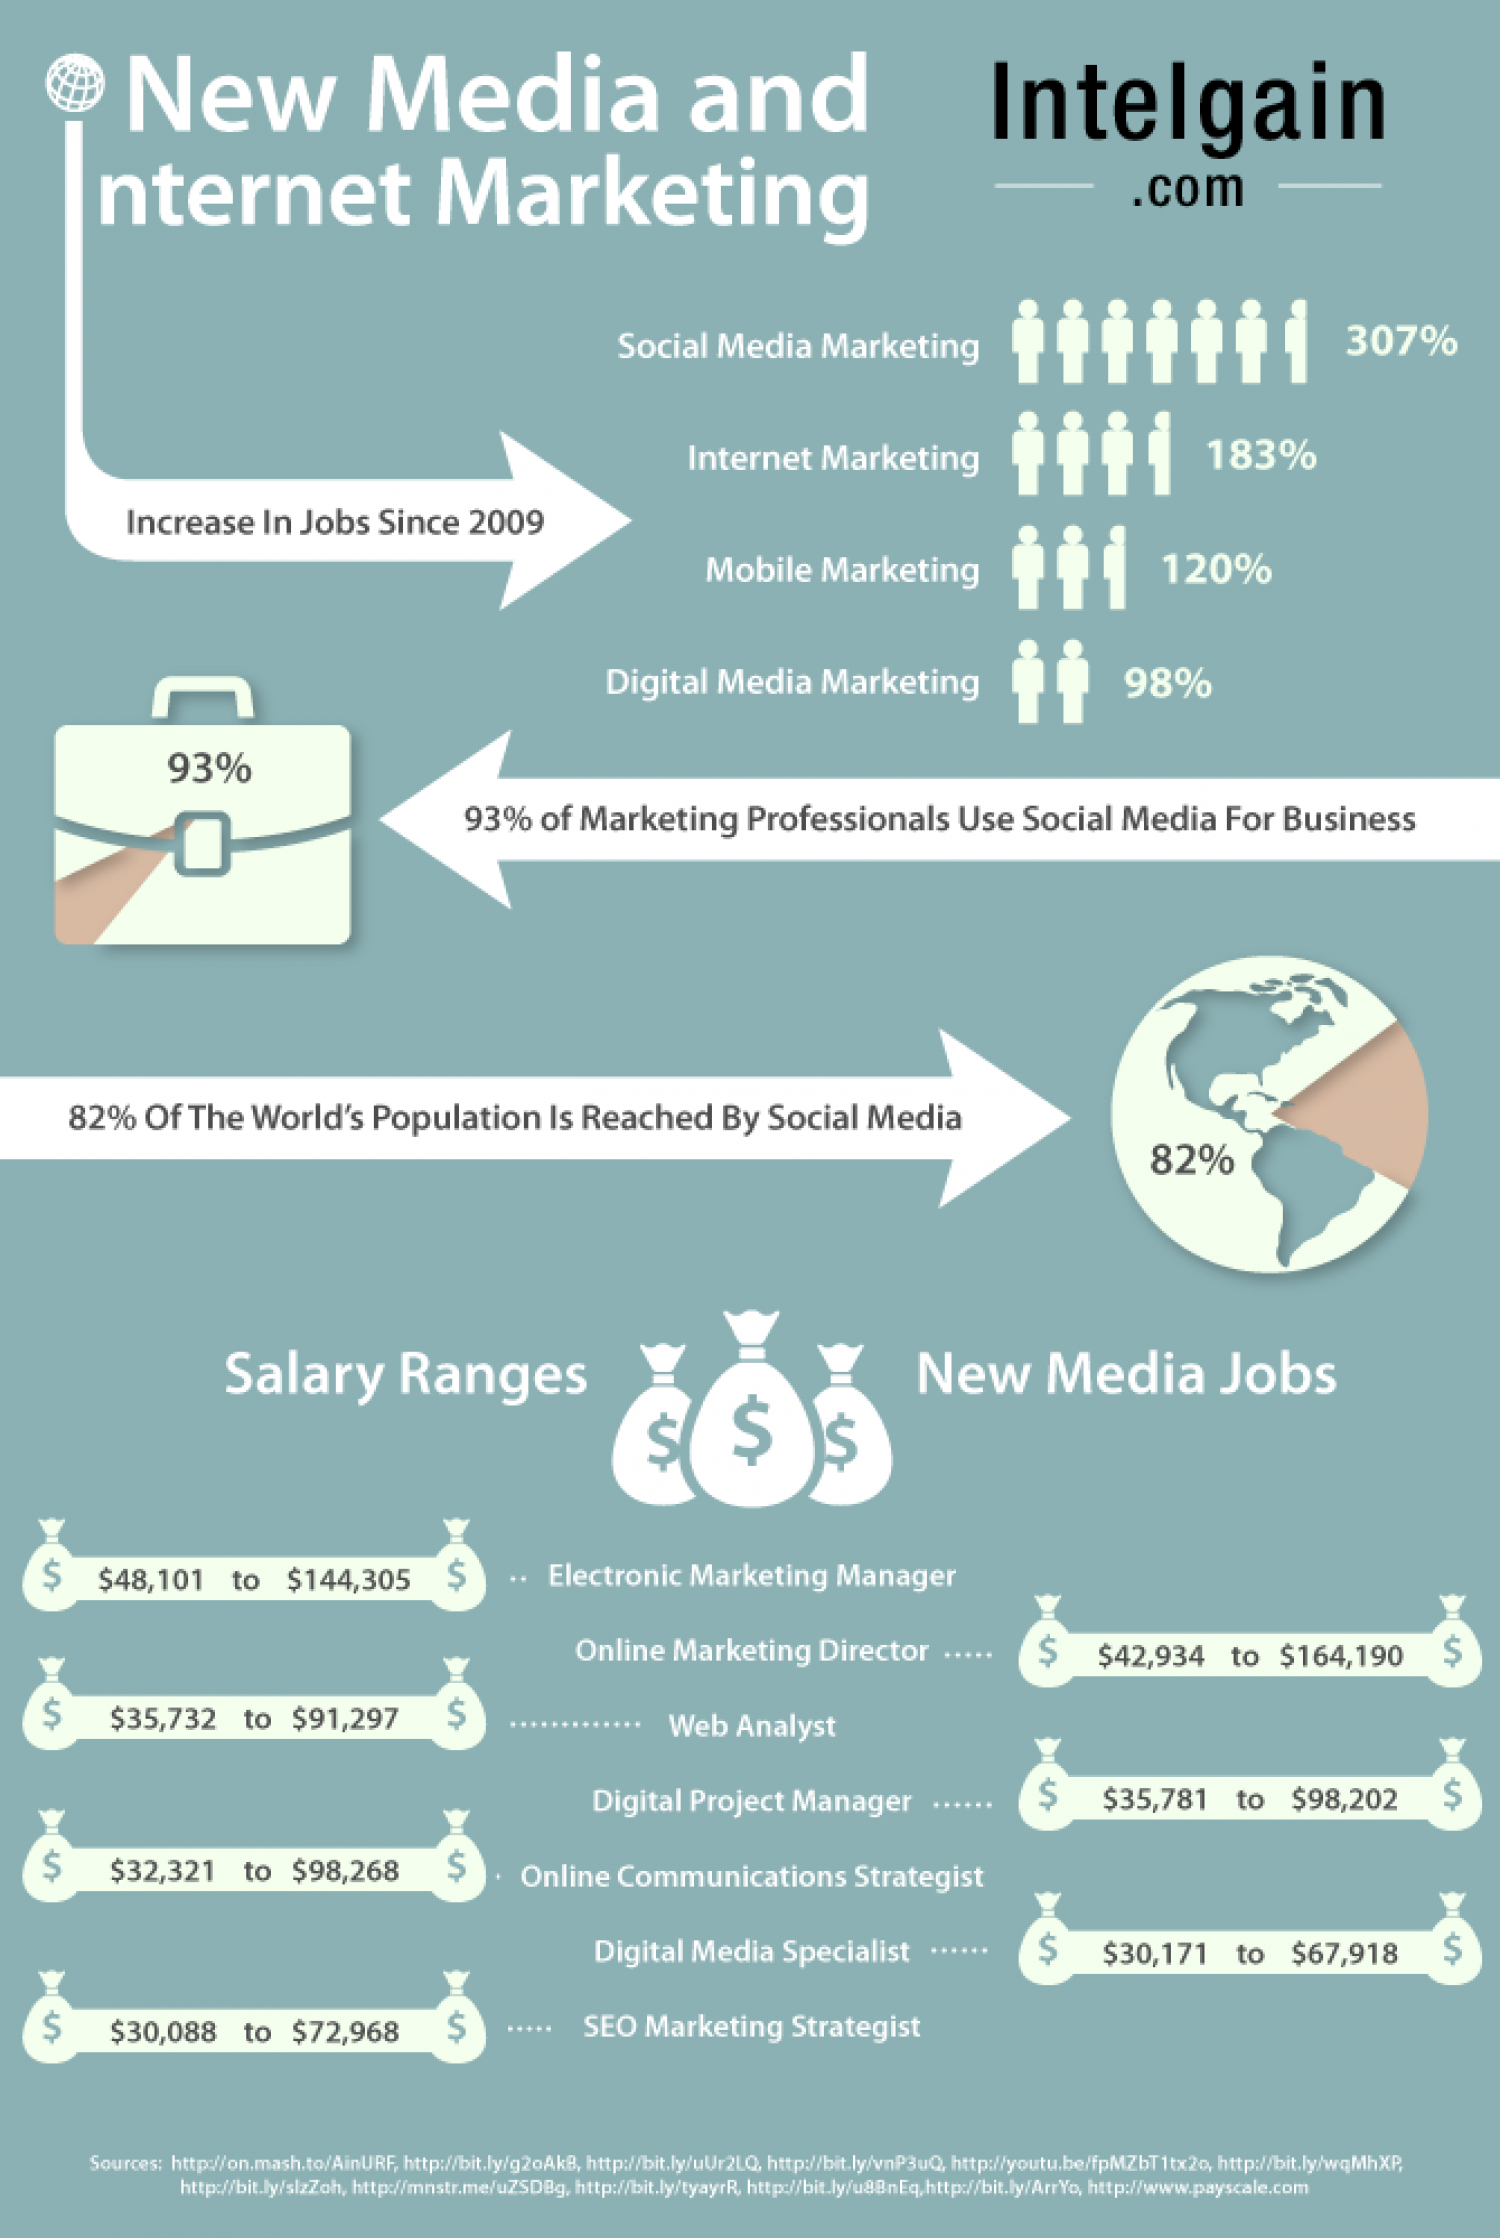 New Media And Internet Marketing Infographic